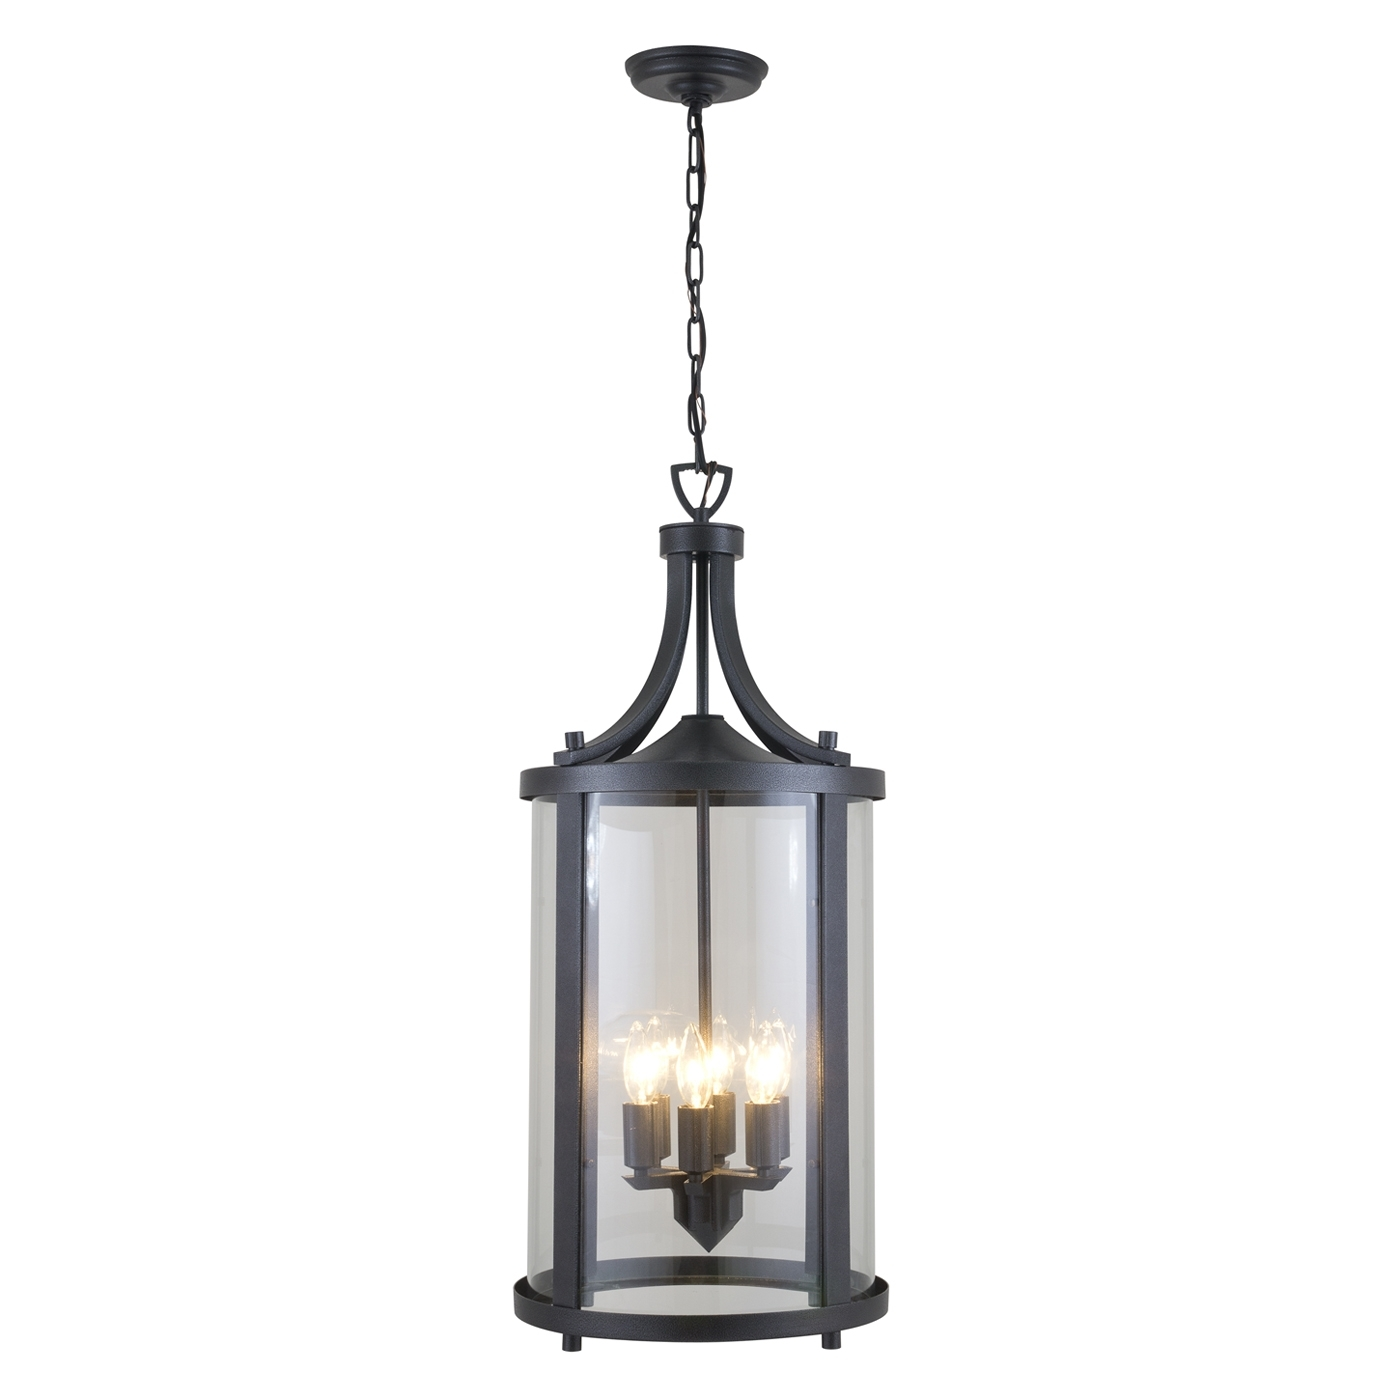 Dvi Niagara Outdoor Large Pendant | Lowe's Canada In Outdoor Hanging Lanterns At Lowes (View 9 of 15)